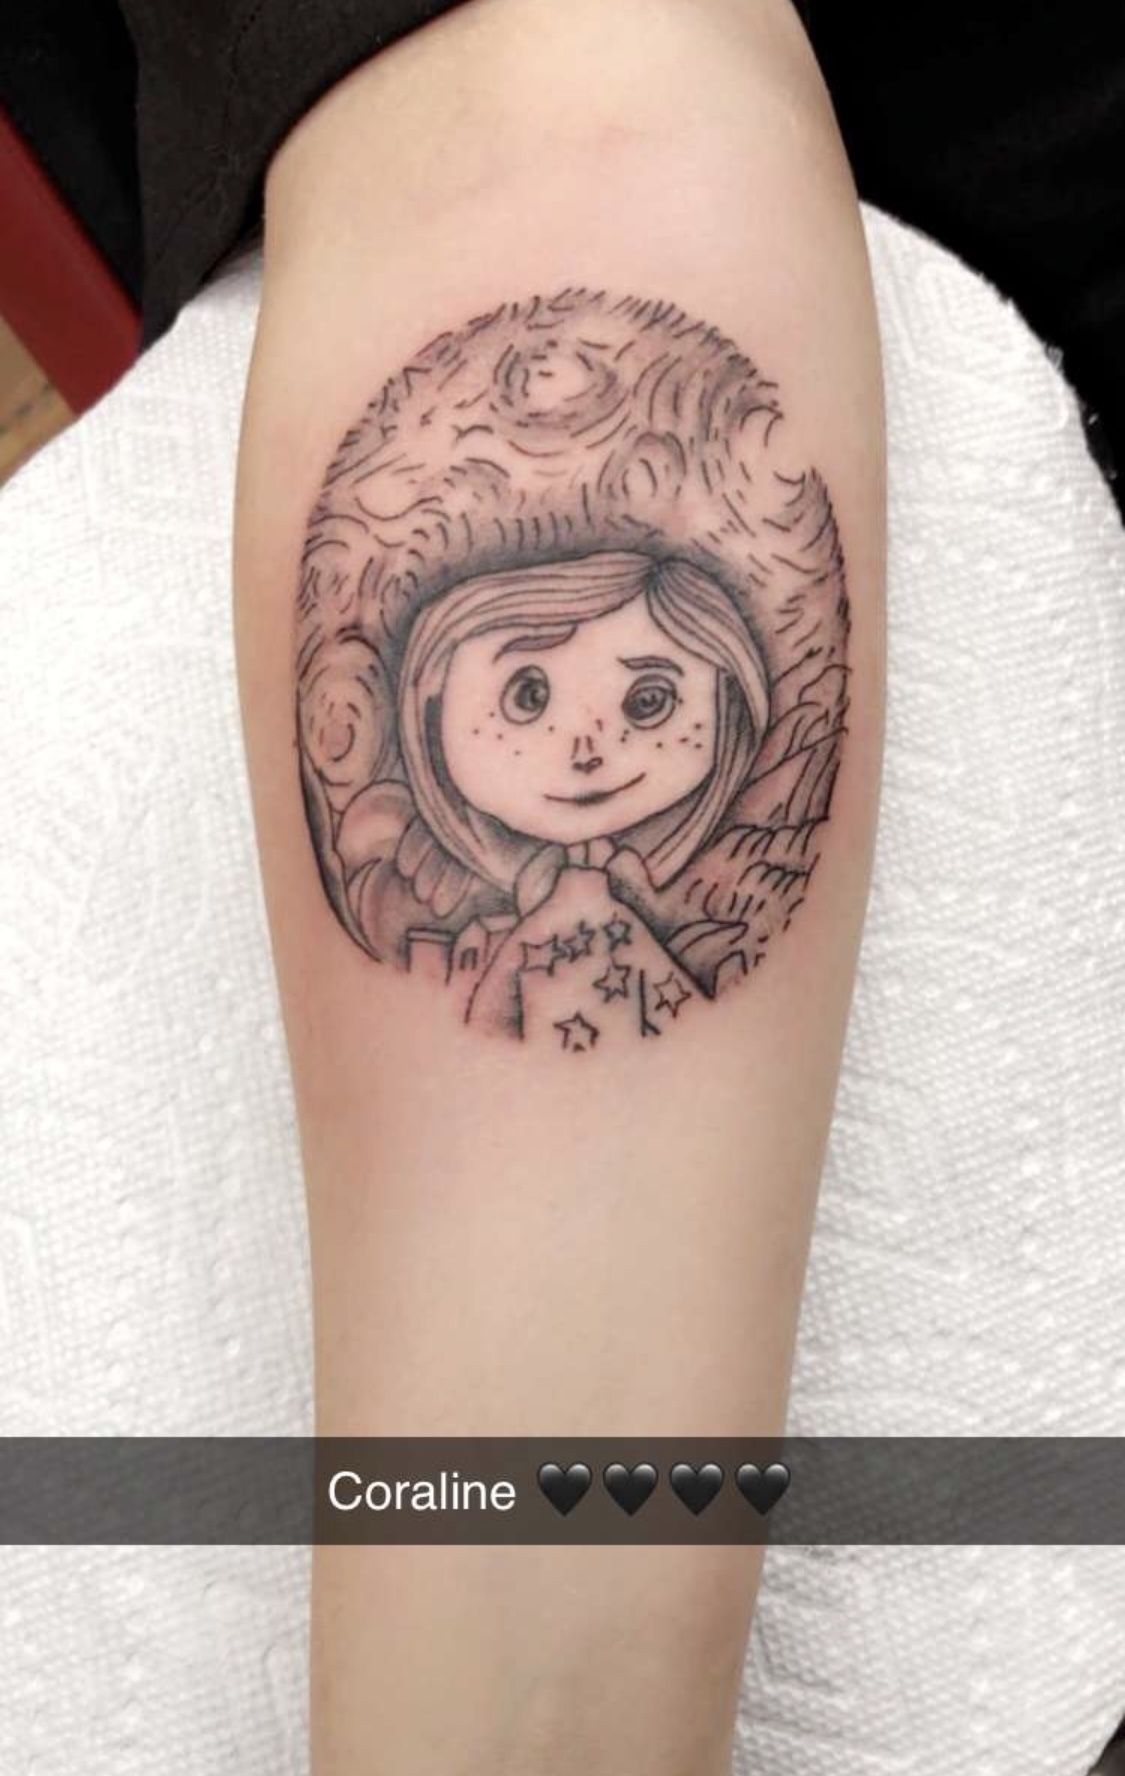 Cute Coraline Tattoo Forearm In 2020 Coraline Tattoo Tattoos Cool Tattoos